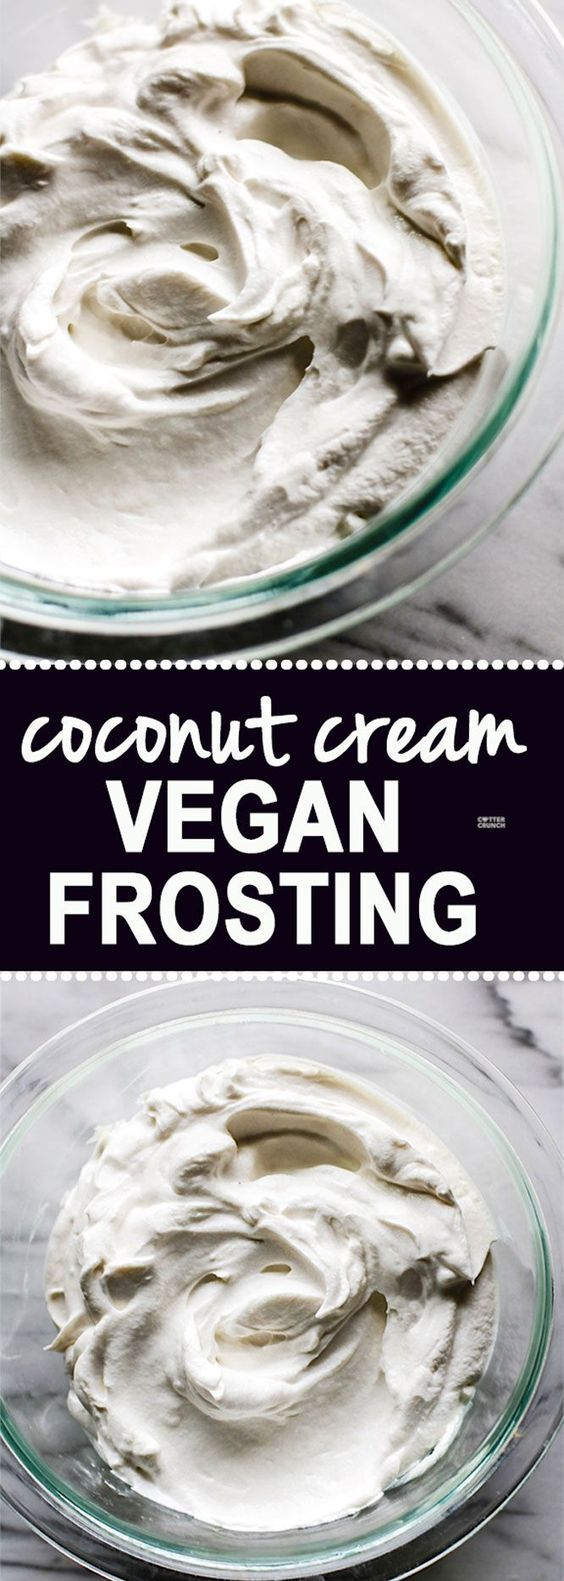 How to Make Gluten Free Fluffy Coconut Cream Vegan Frosting! It literally takes 2 ingredients and just one method. This coconut cream vegan frosting is super delicious, healthy, paleo friendly, and did I mention EASY?! Yes! SIMPLE to make /cottercrunch/